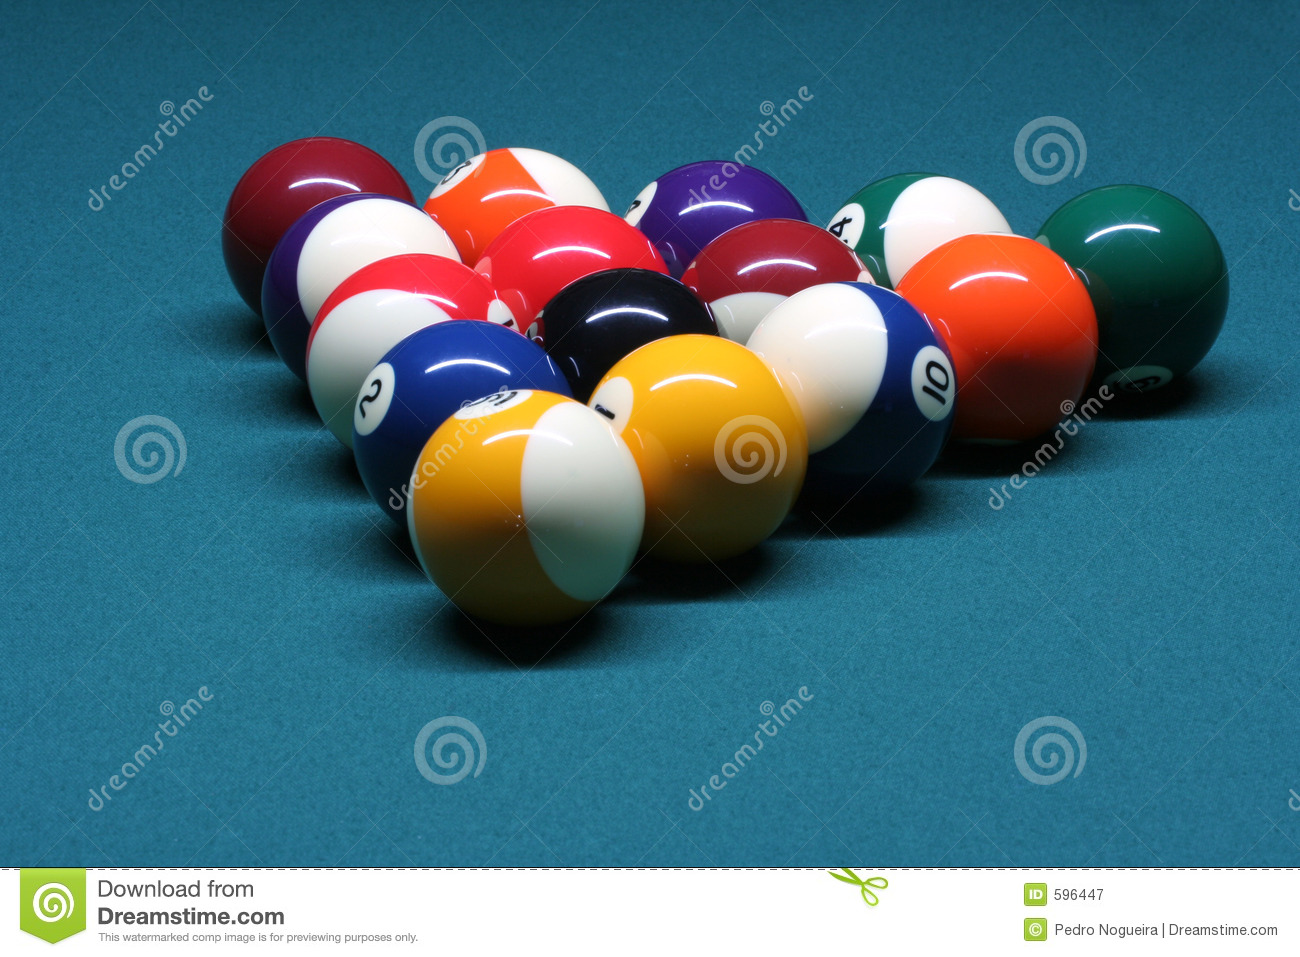 pool balls in rack position royalty free stock photography image 596447. Black Bedroom Furniture Sets. Home Design Ideas